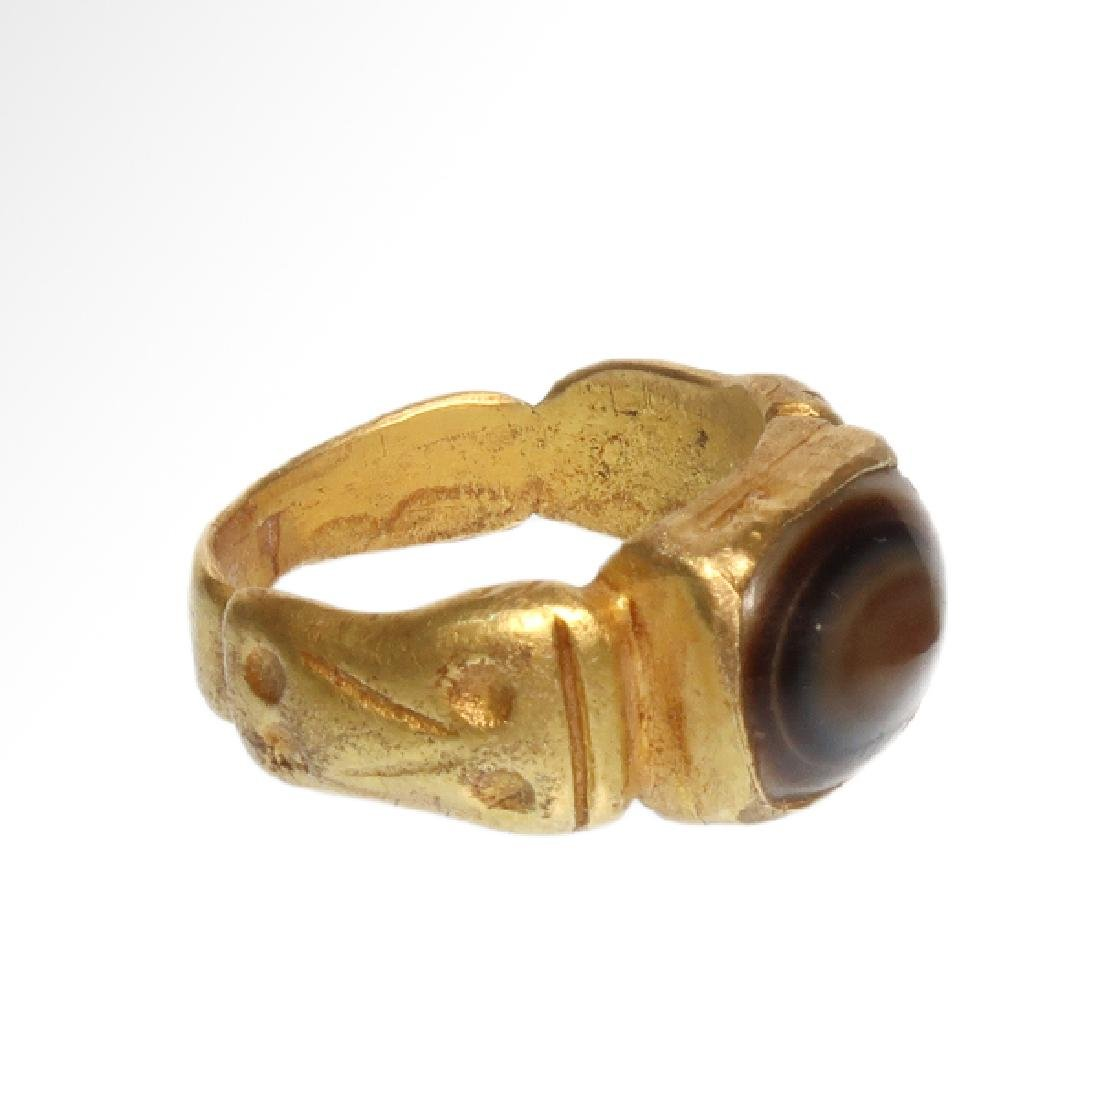 Roman Gold Ring with Banded Agate Ring-stone, 2nd - 4